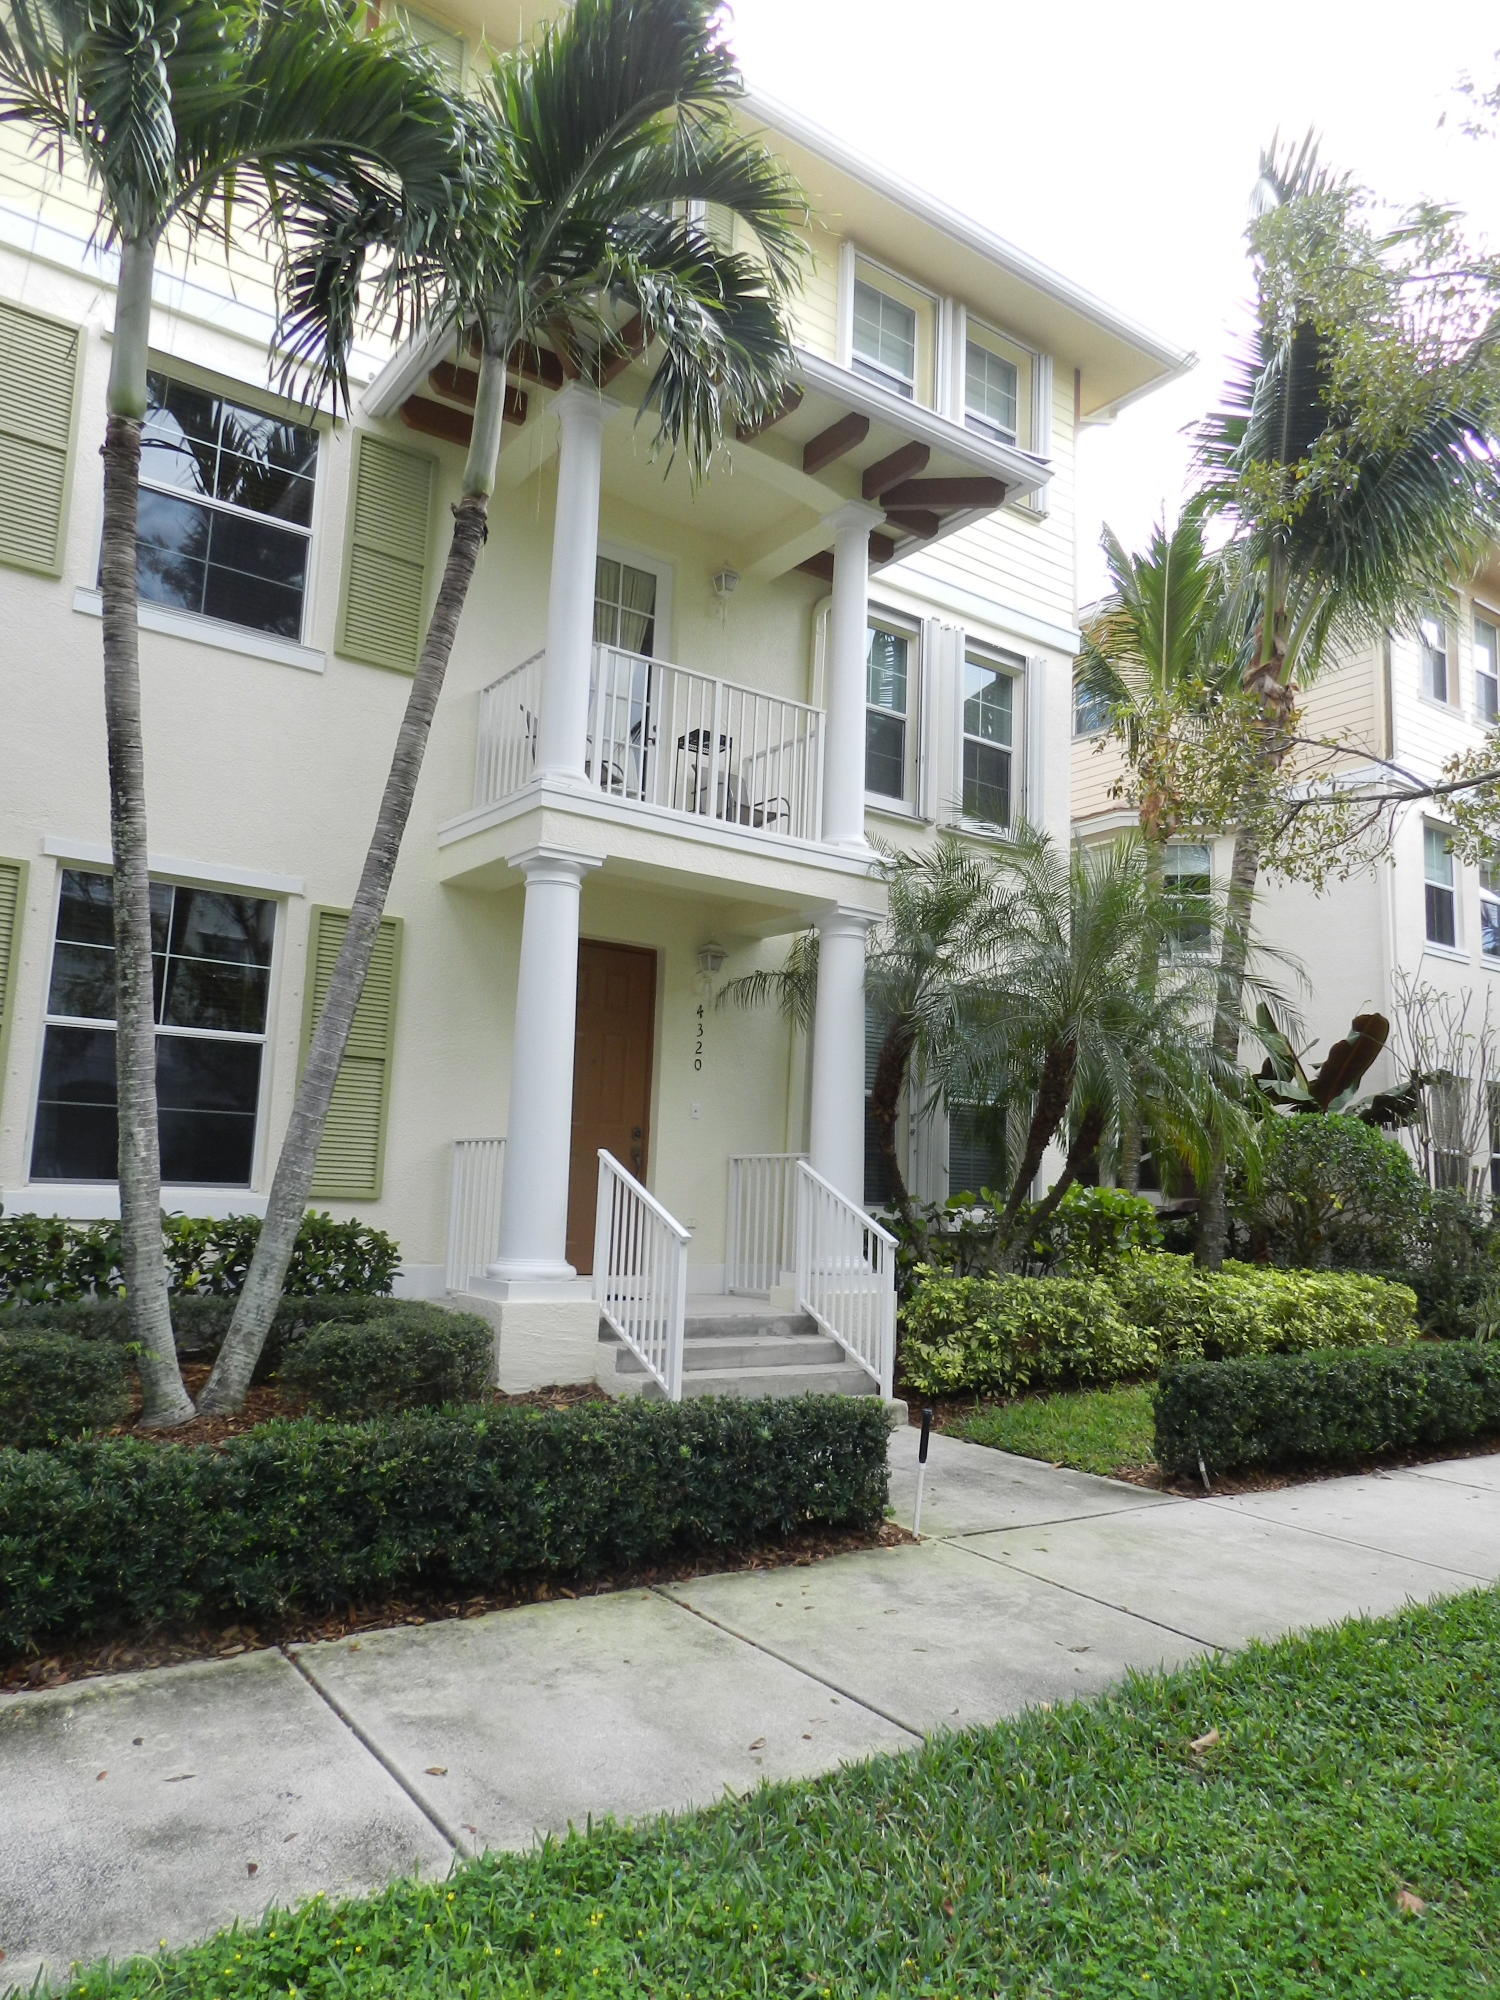 4320 Blowing Point Place, Jupiter, Florida 33458, 4 Bedrooms Bedrooms, ,3.1 BathroomsBathrooms,F,Townhouse,Blowing Point,RX-10591410